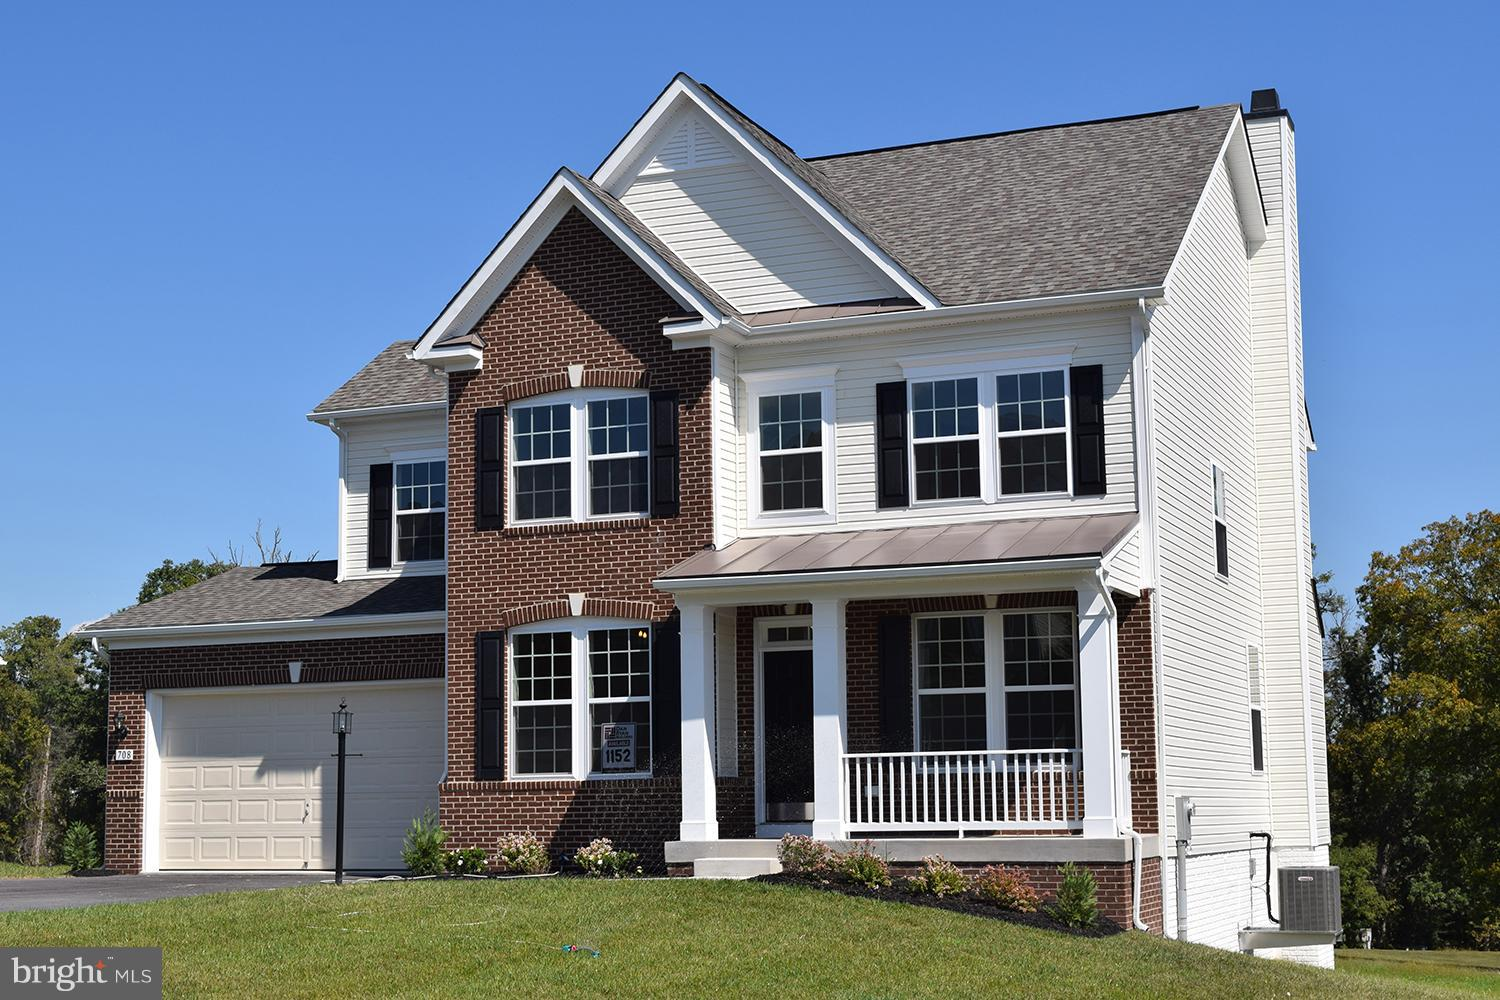 0 STRATHMORE WAY NEWBURY PLAN, MARTINSBURG, WV 25402